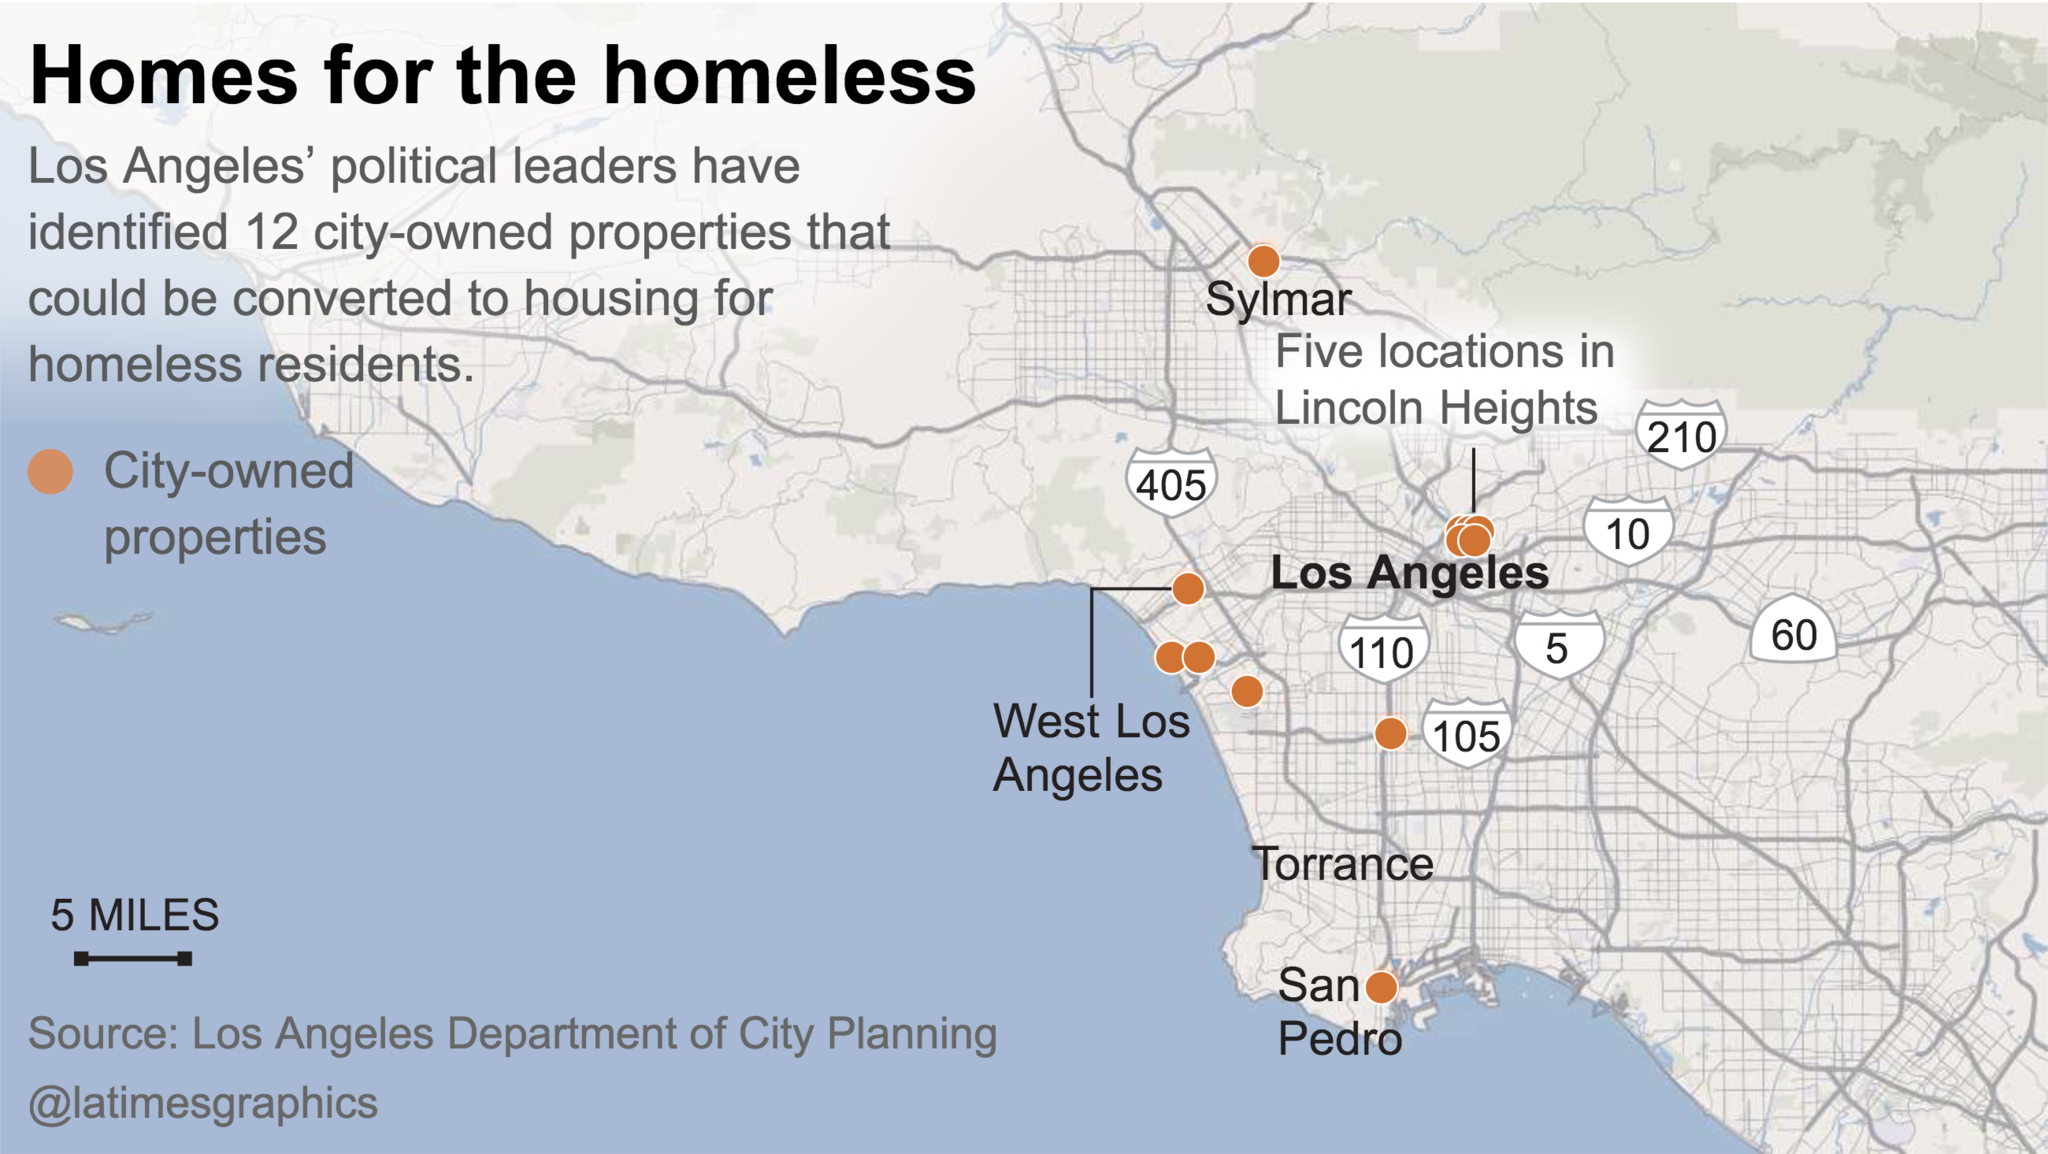 Ballot Measure Could Upset La's Plan For Housing The Homeless La Times Los  Angeles Times)